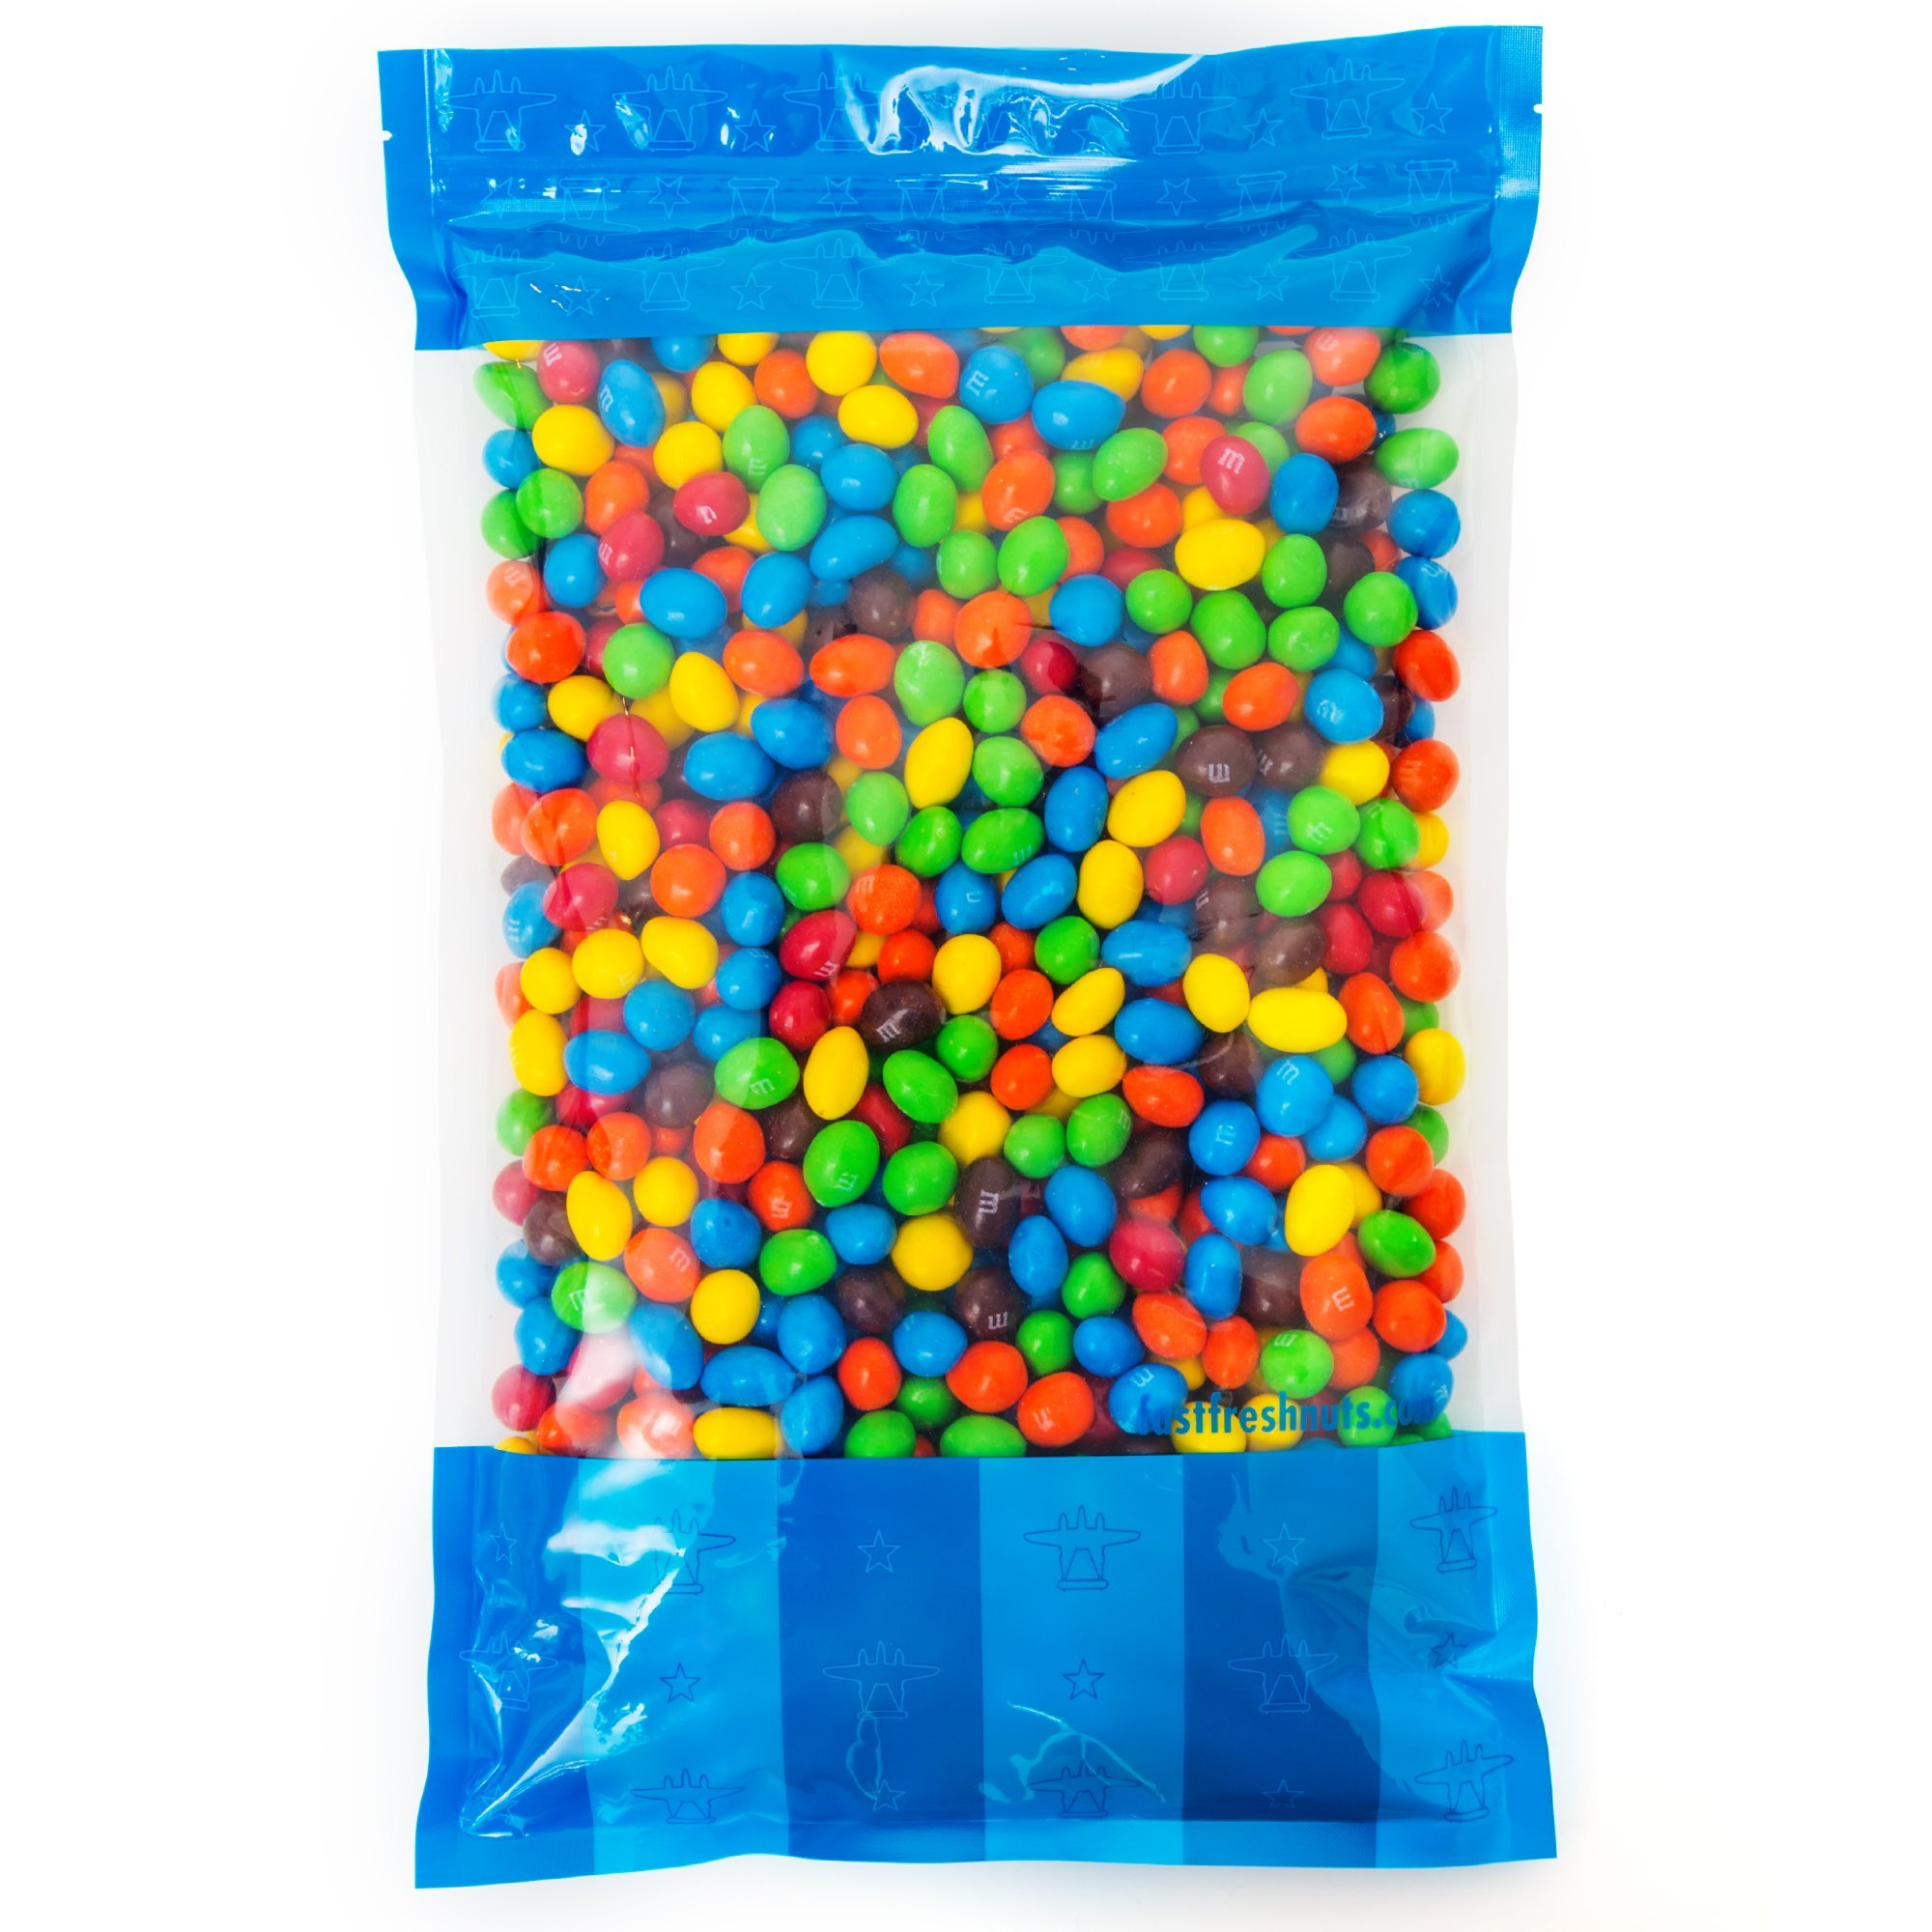 Bulk Peanut M&Ms in Resealable Bomber Bag, Wholesale Chocolate & Peanut Candy (5lb Bag) by Fast Fresh Nuts